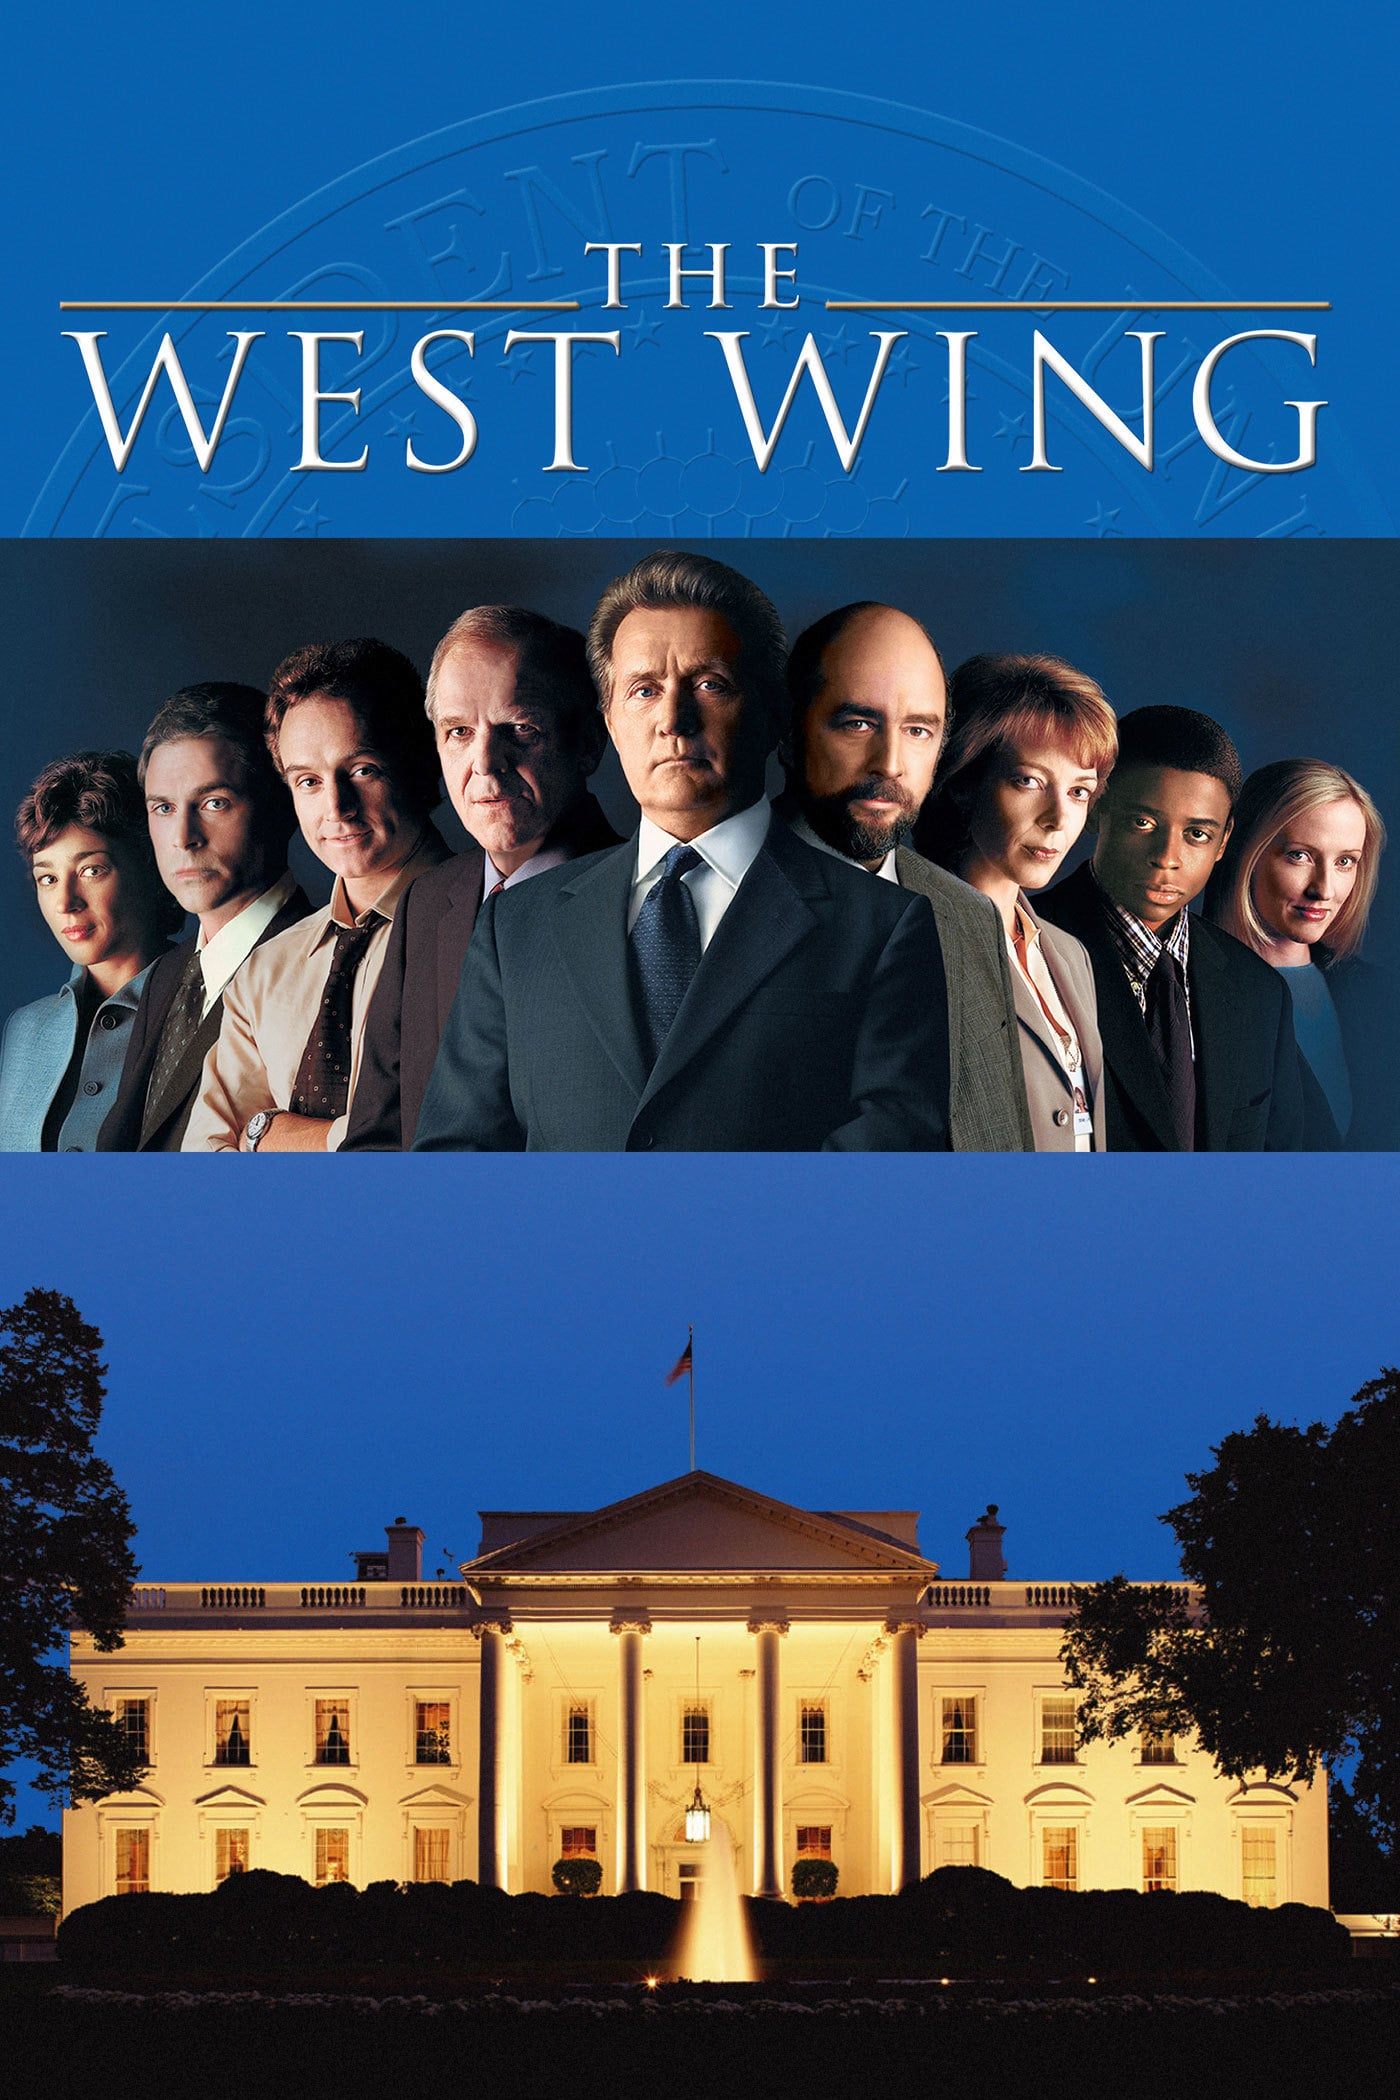 The West Wing (TV Series 1999–2006) - IMDb